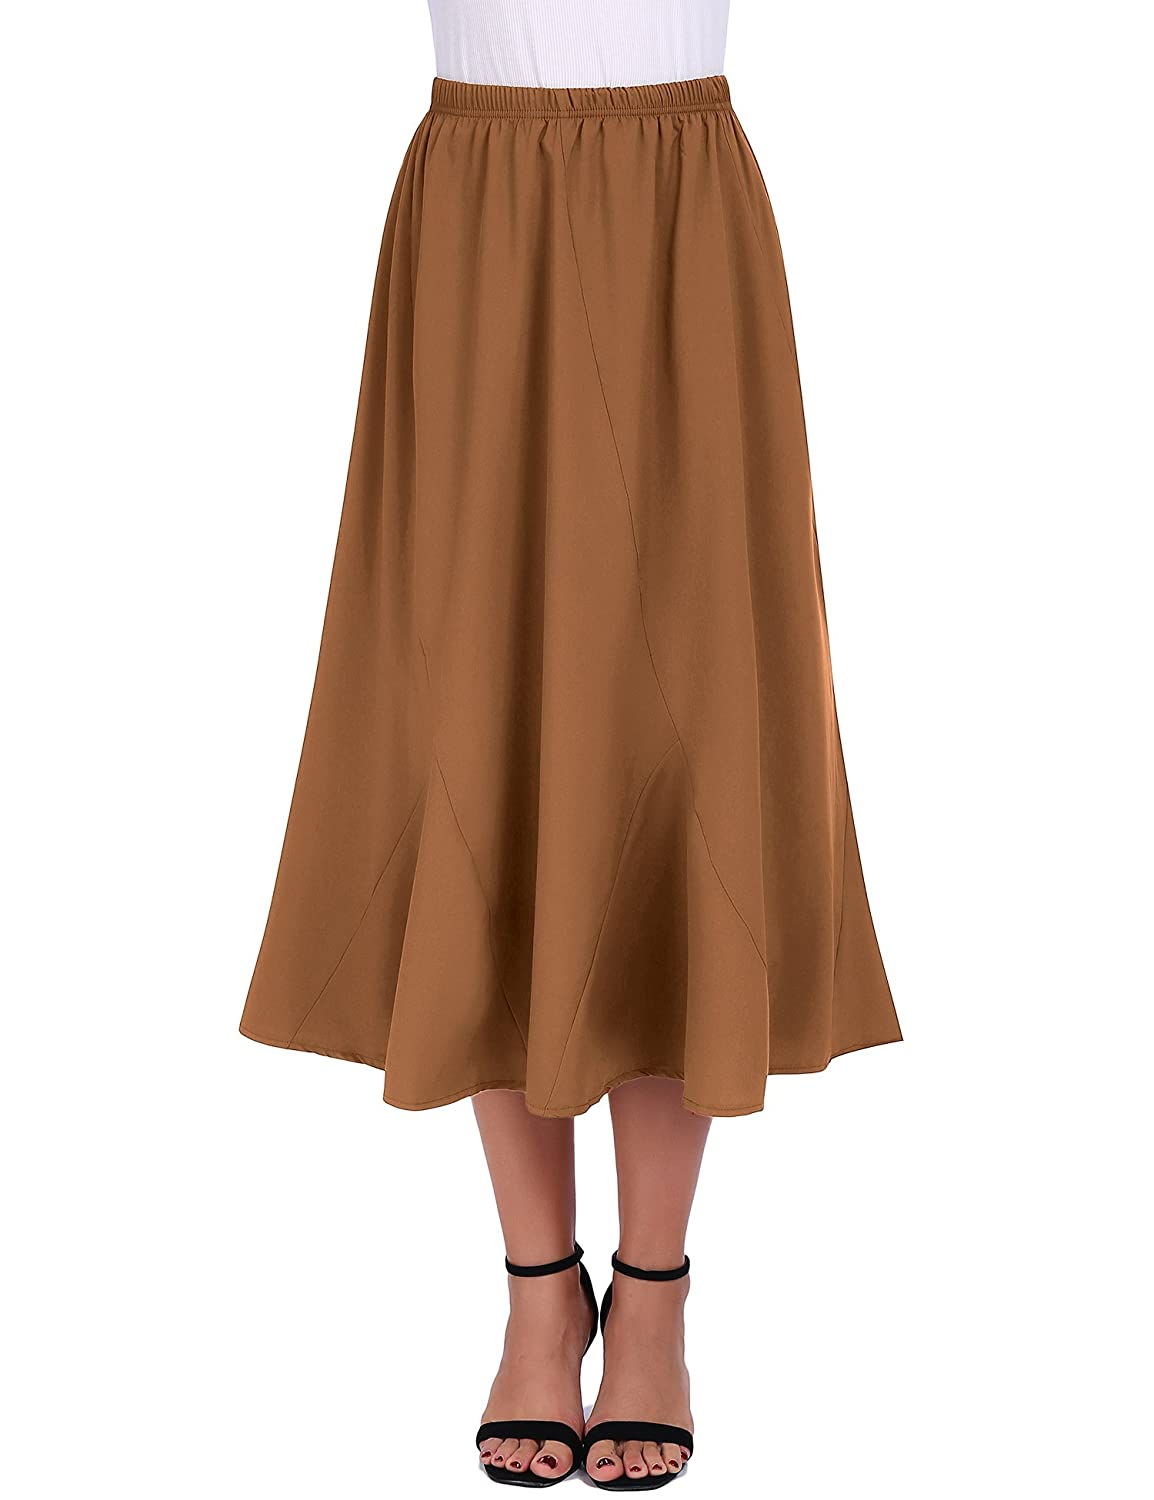 a1ee96361b06 Note: Our size is a little small, please select one size up before  purchasing. Womens Vintage Skirts Style: Loose ruffled design maxi skirt,  Flared ...